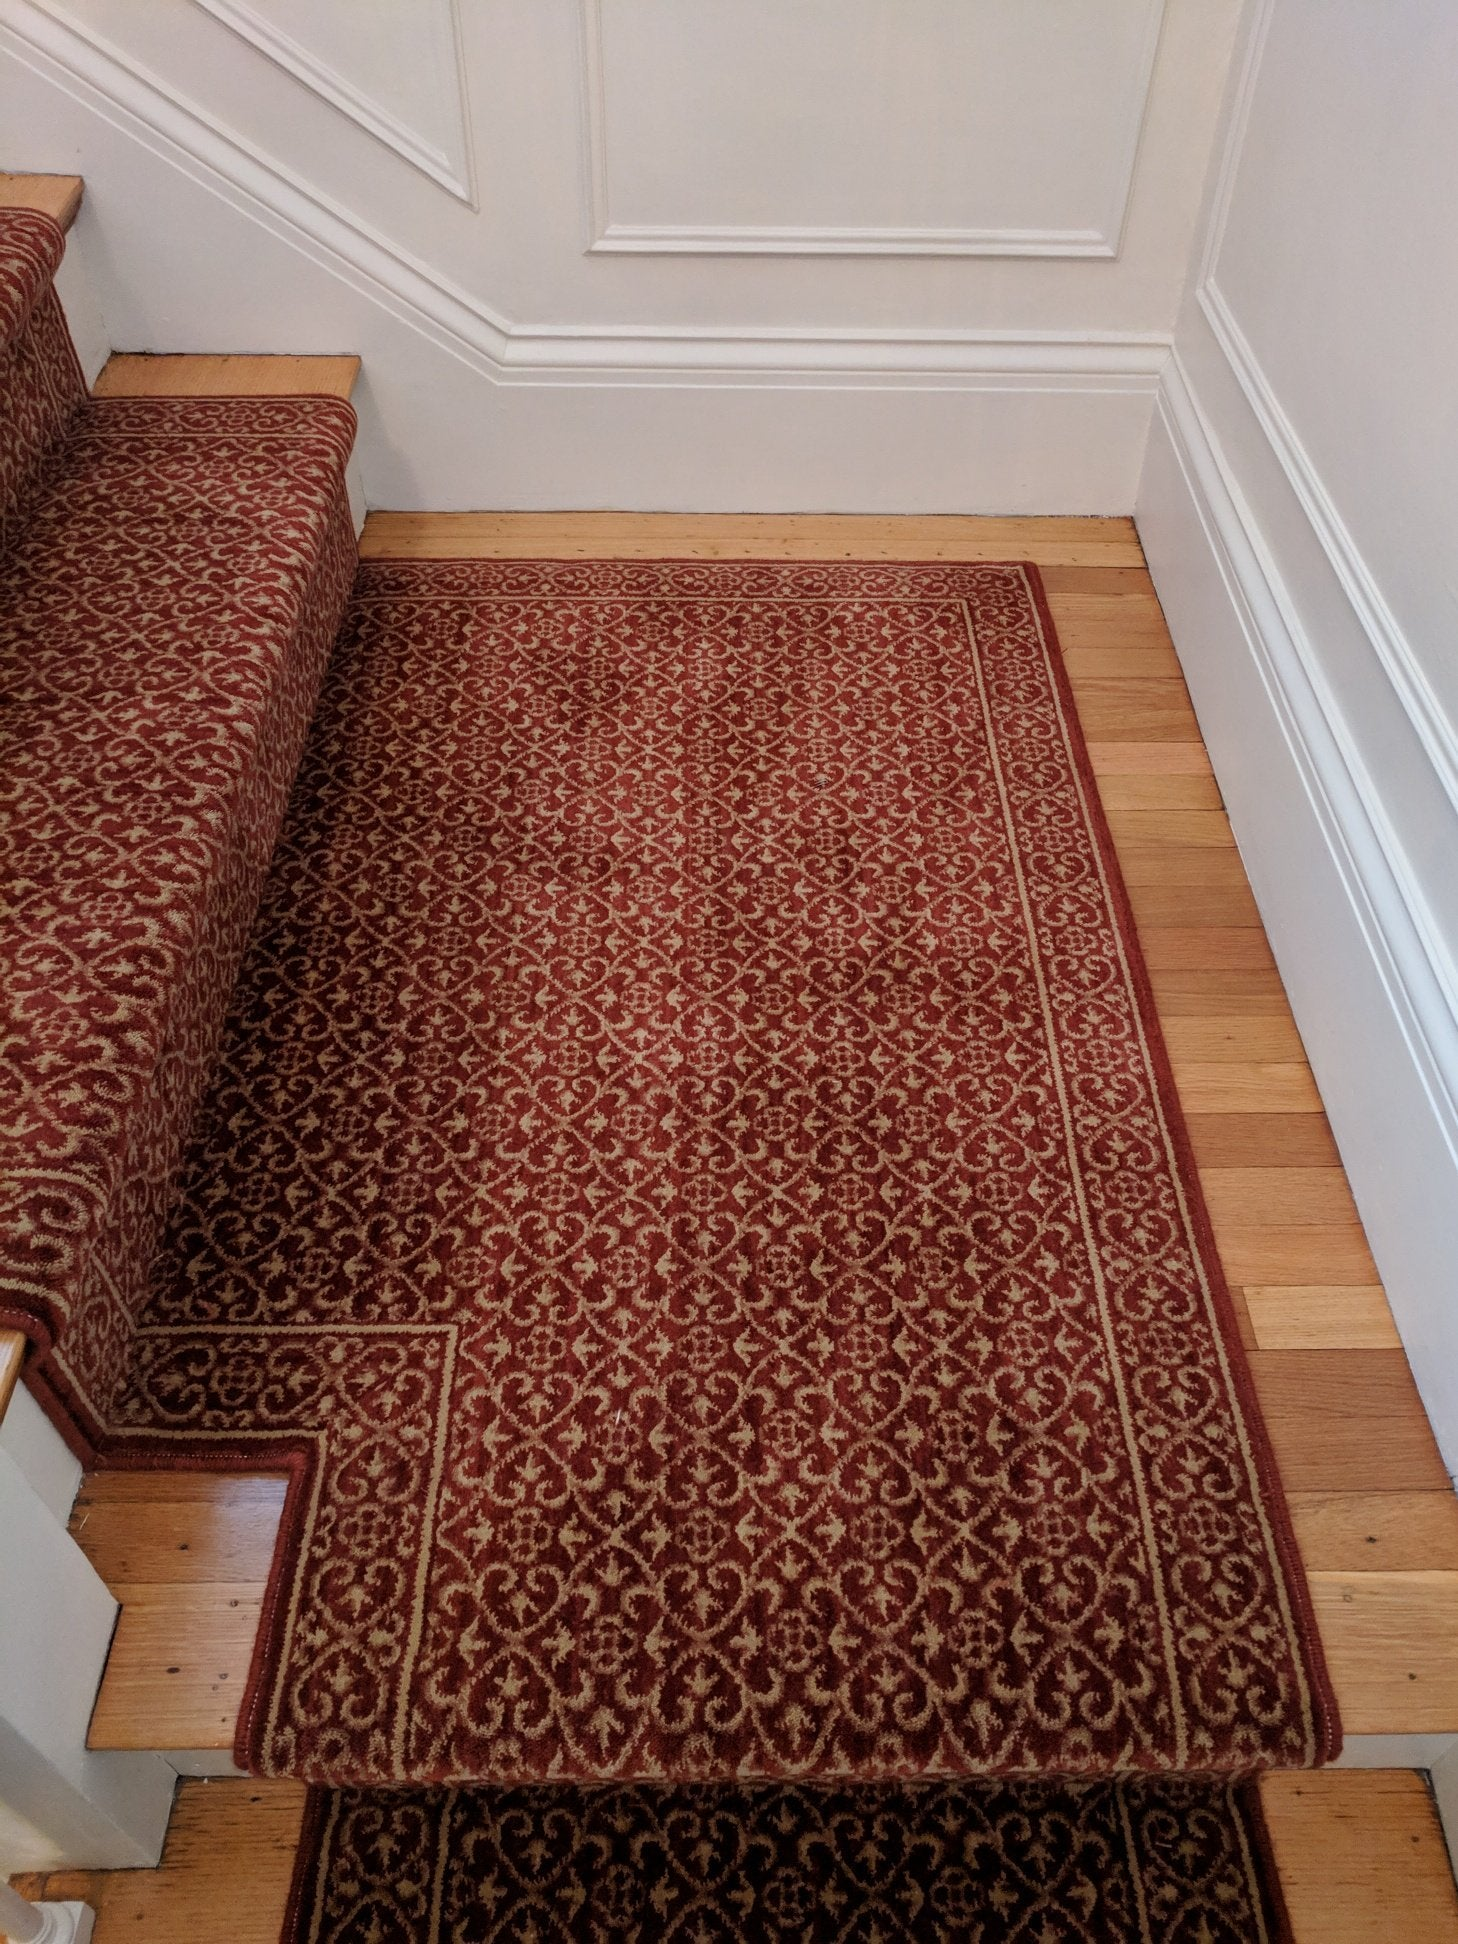 Chateau Riems Rm21 Ruby Stair Runners 27in Sold By The Foot